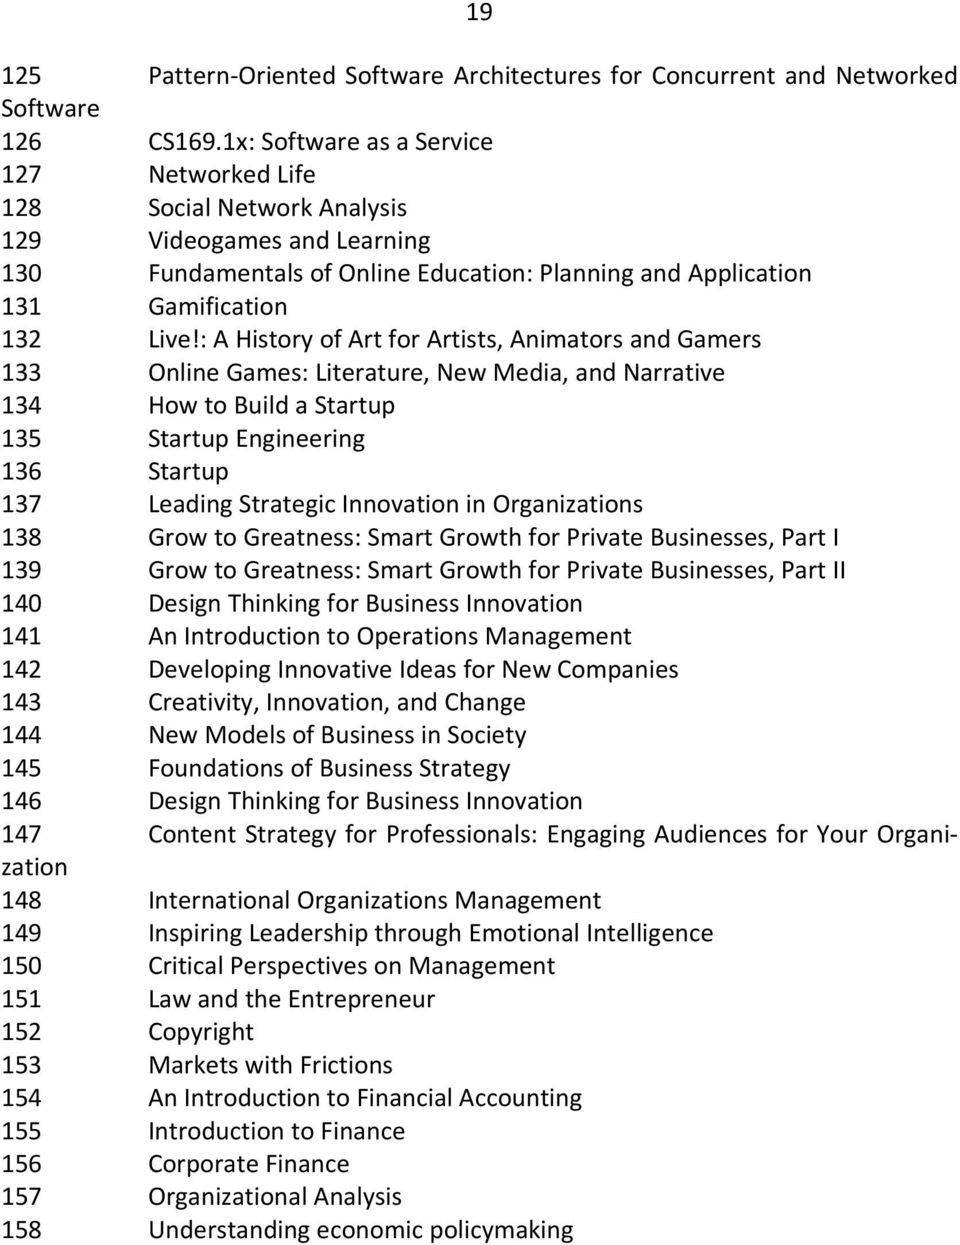 : A History of Art for Artists, Animators and Gamers 133 Online Games: Literature, New Media, and Narrative 134 How to Build a Startup 135 Startup Engineering 136 Startup 137 Leading Strategic